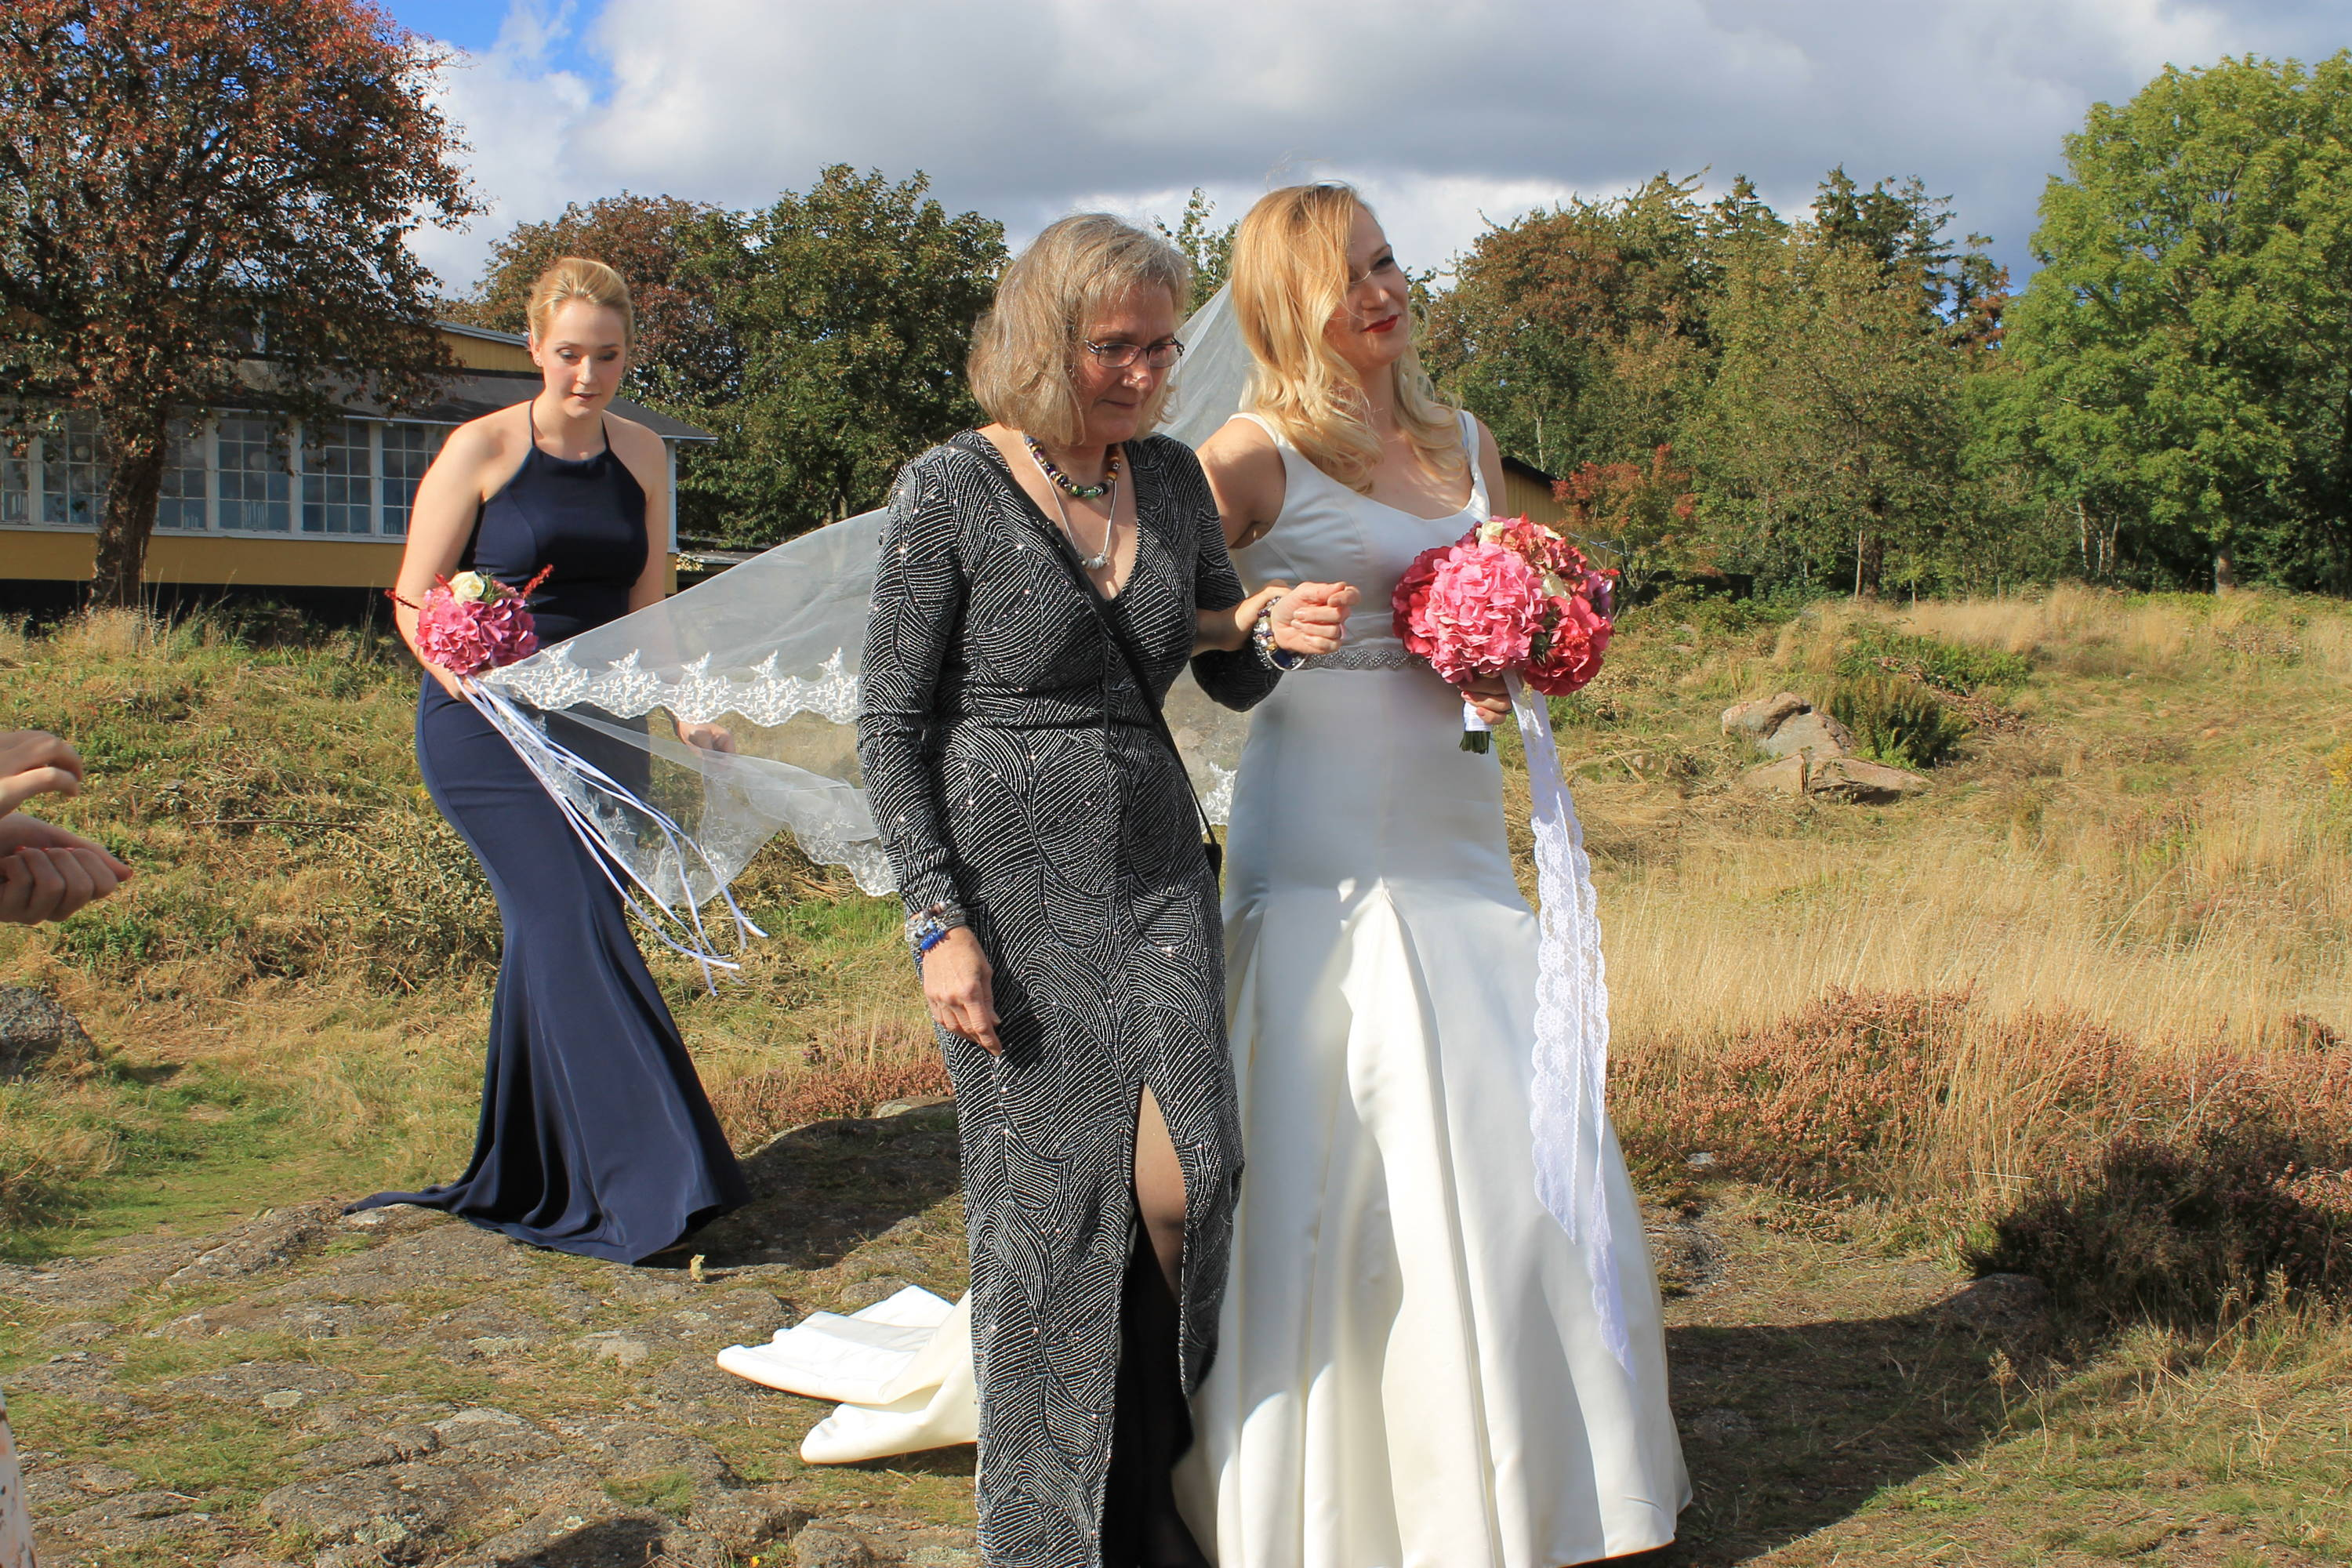 Wedding walk on the rocks in Bornholm with mom and sister